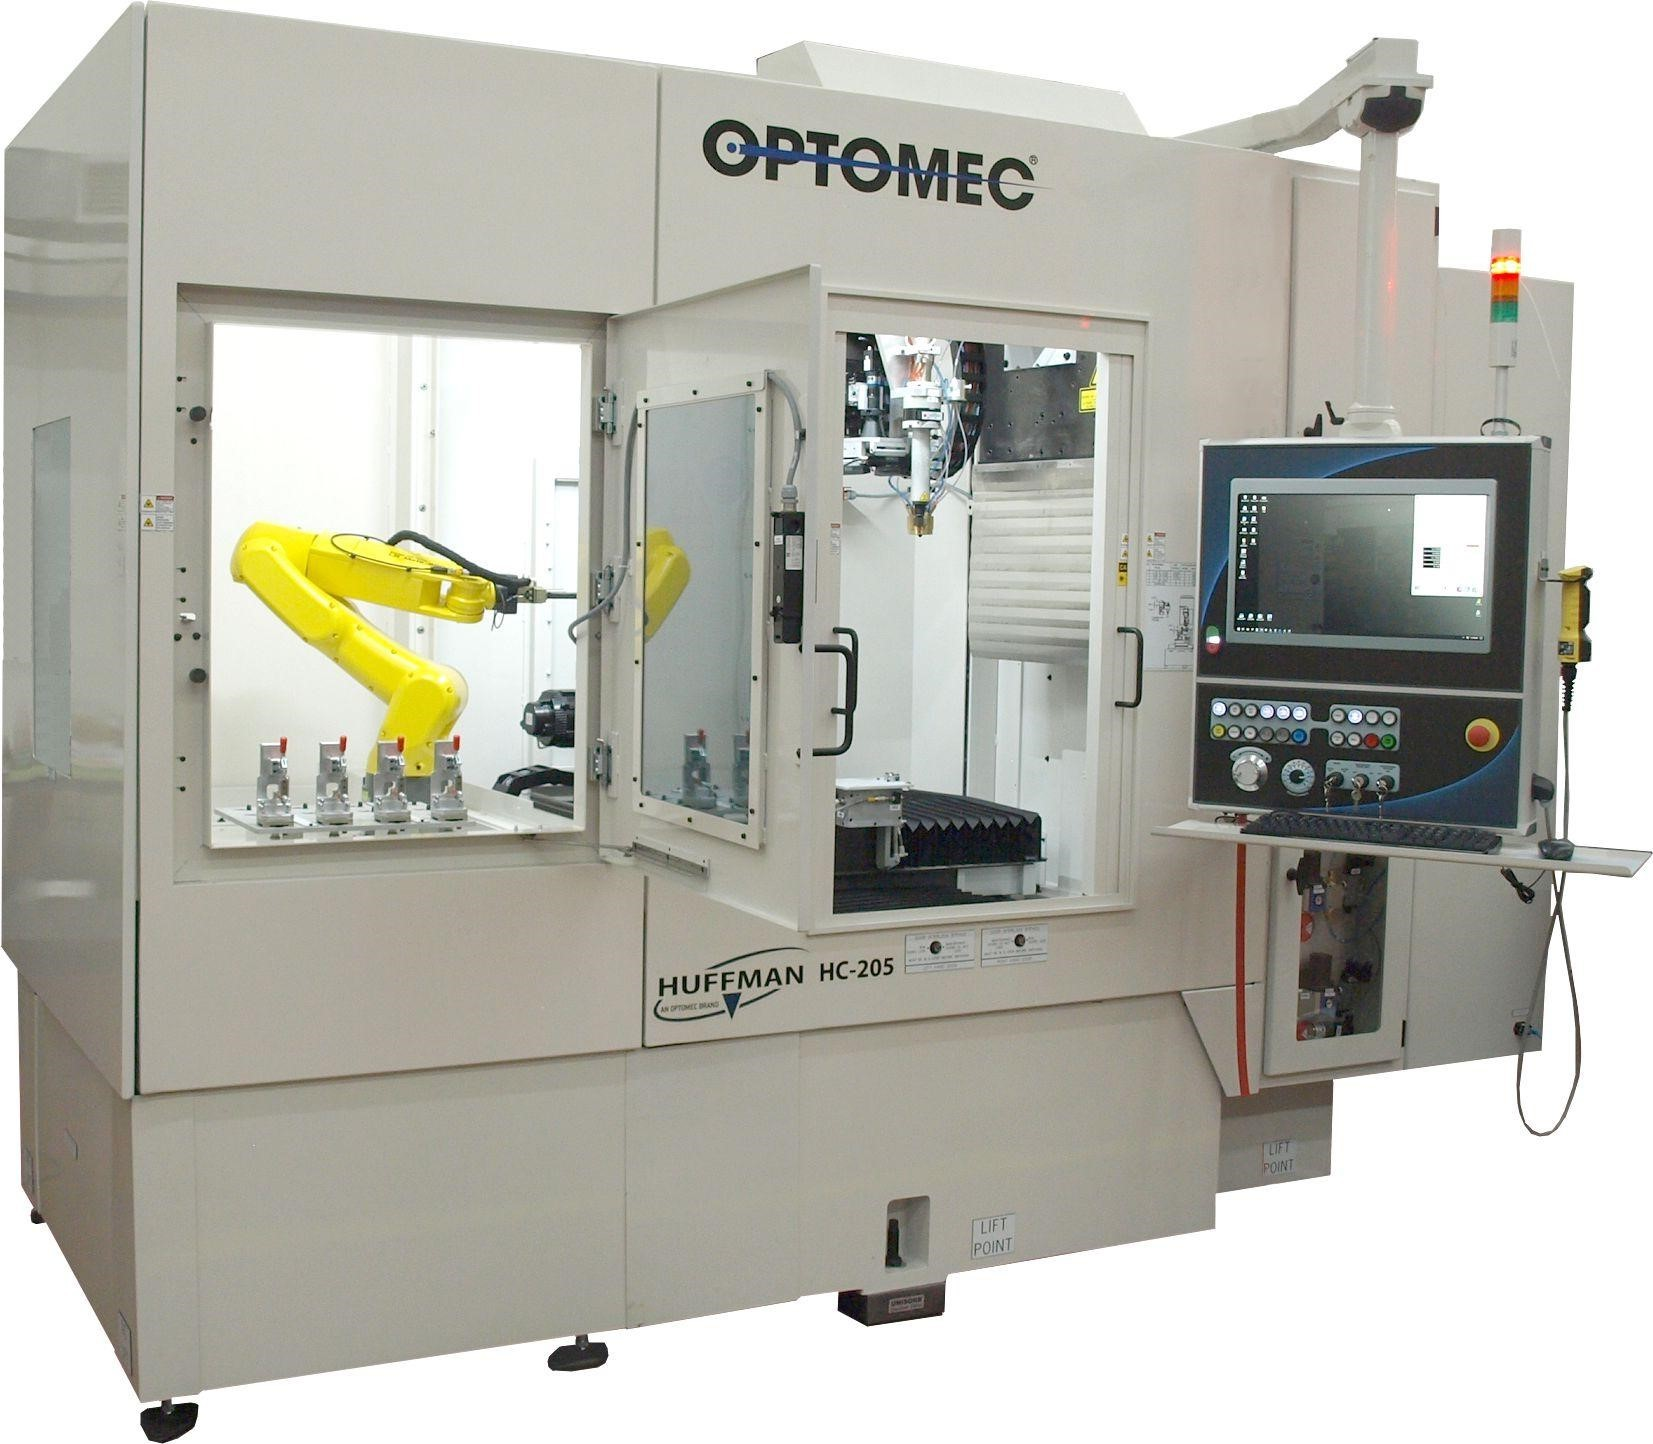 Optomec Huffman DED system with robotic arm. Photo via Optomec.